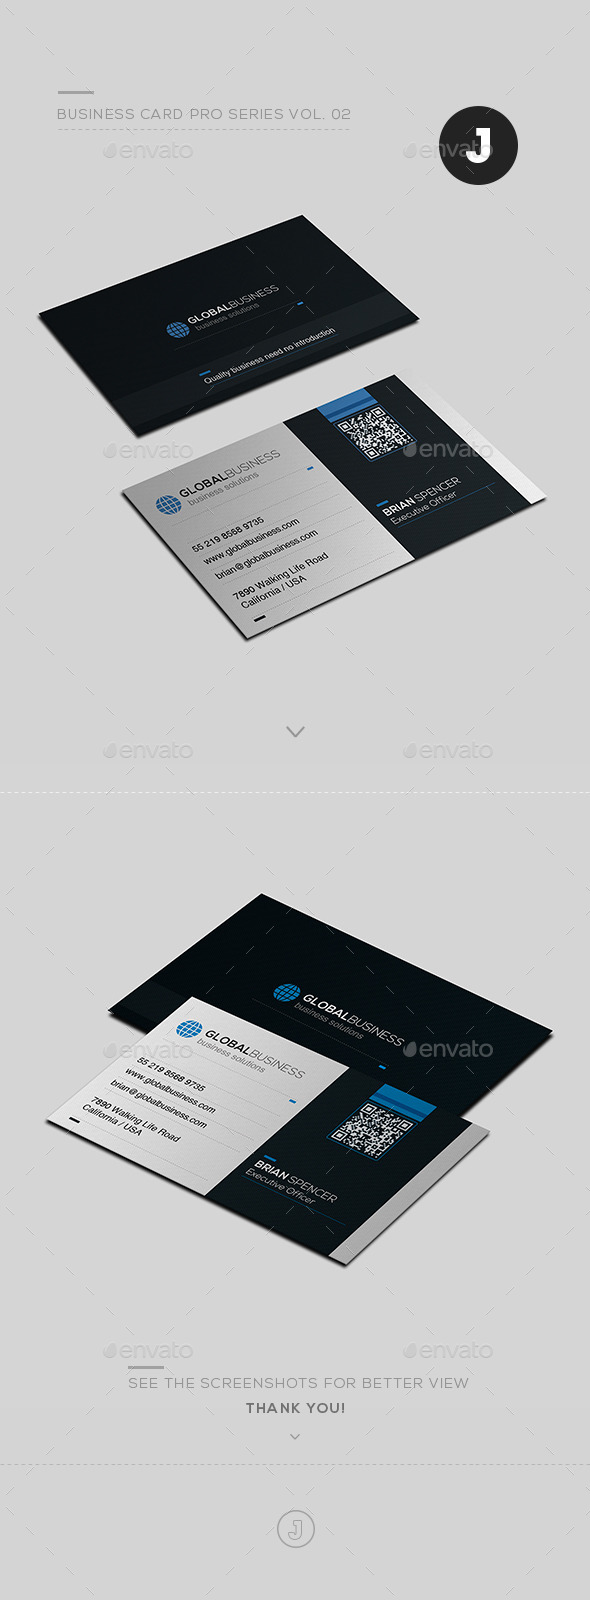 Business Card Pro Series Vol. 02 - Creative Business Cards